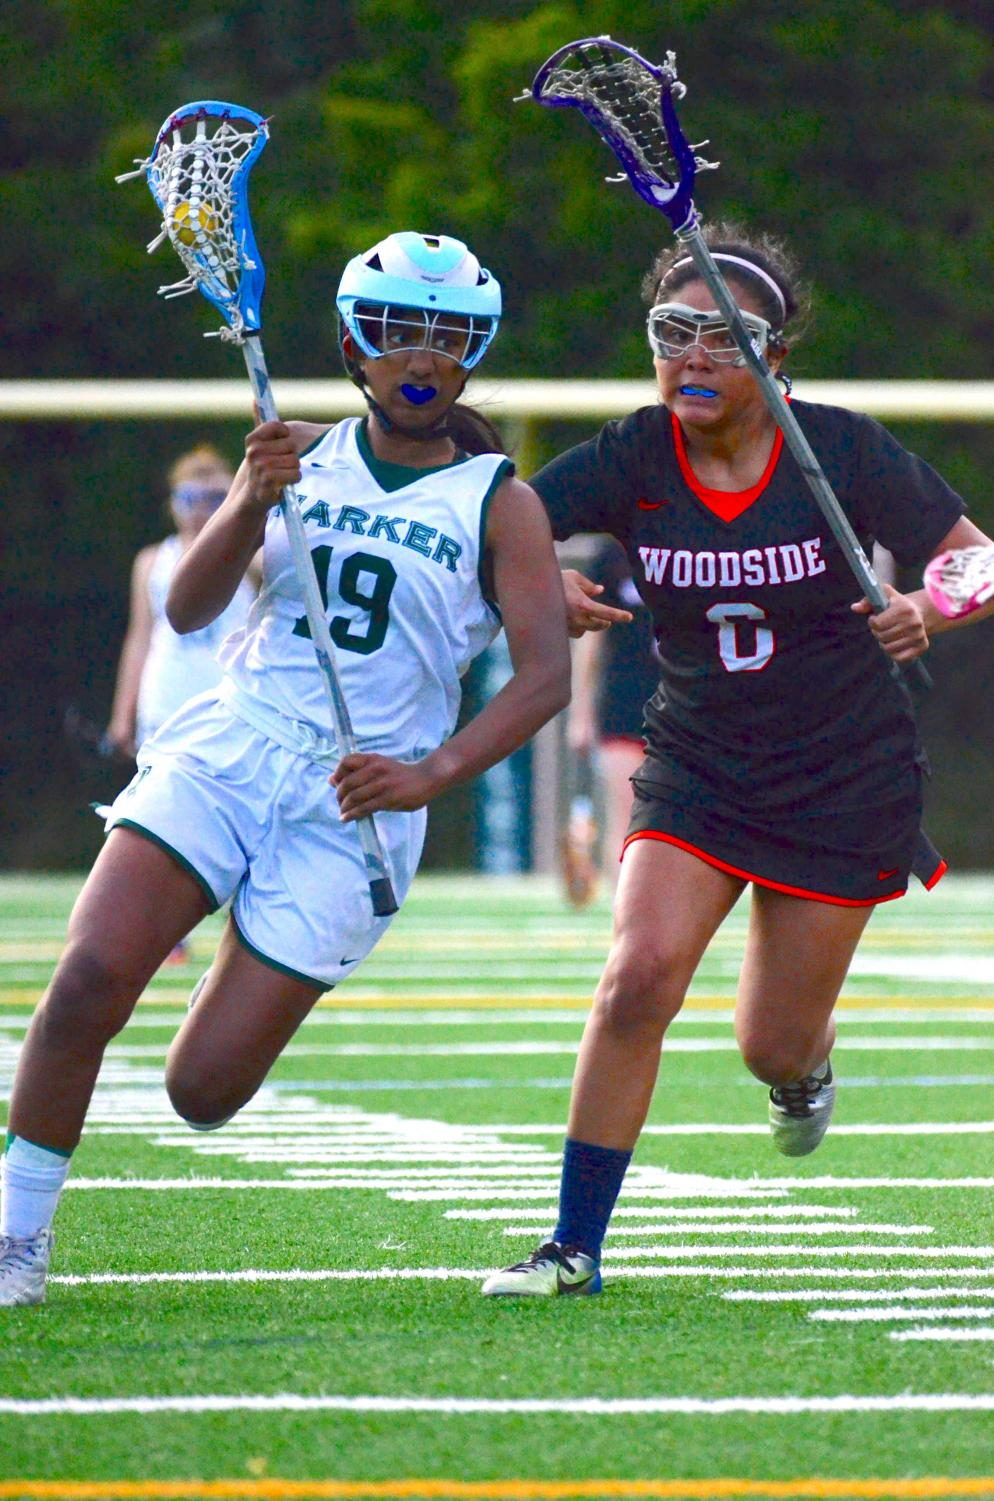 Anna Vazhaeparambil (10) cradles the ball as she runs past a defender, aiming for the opponents' goal in the semifinals. The girls lost 9-6 to Woodside.